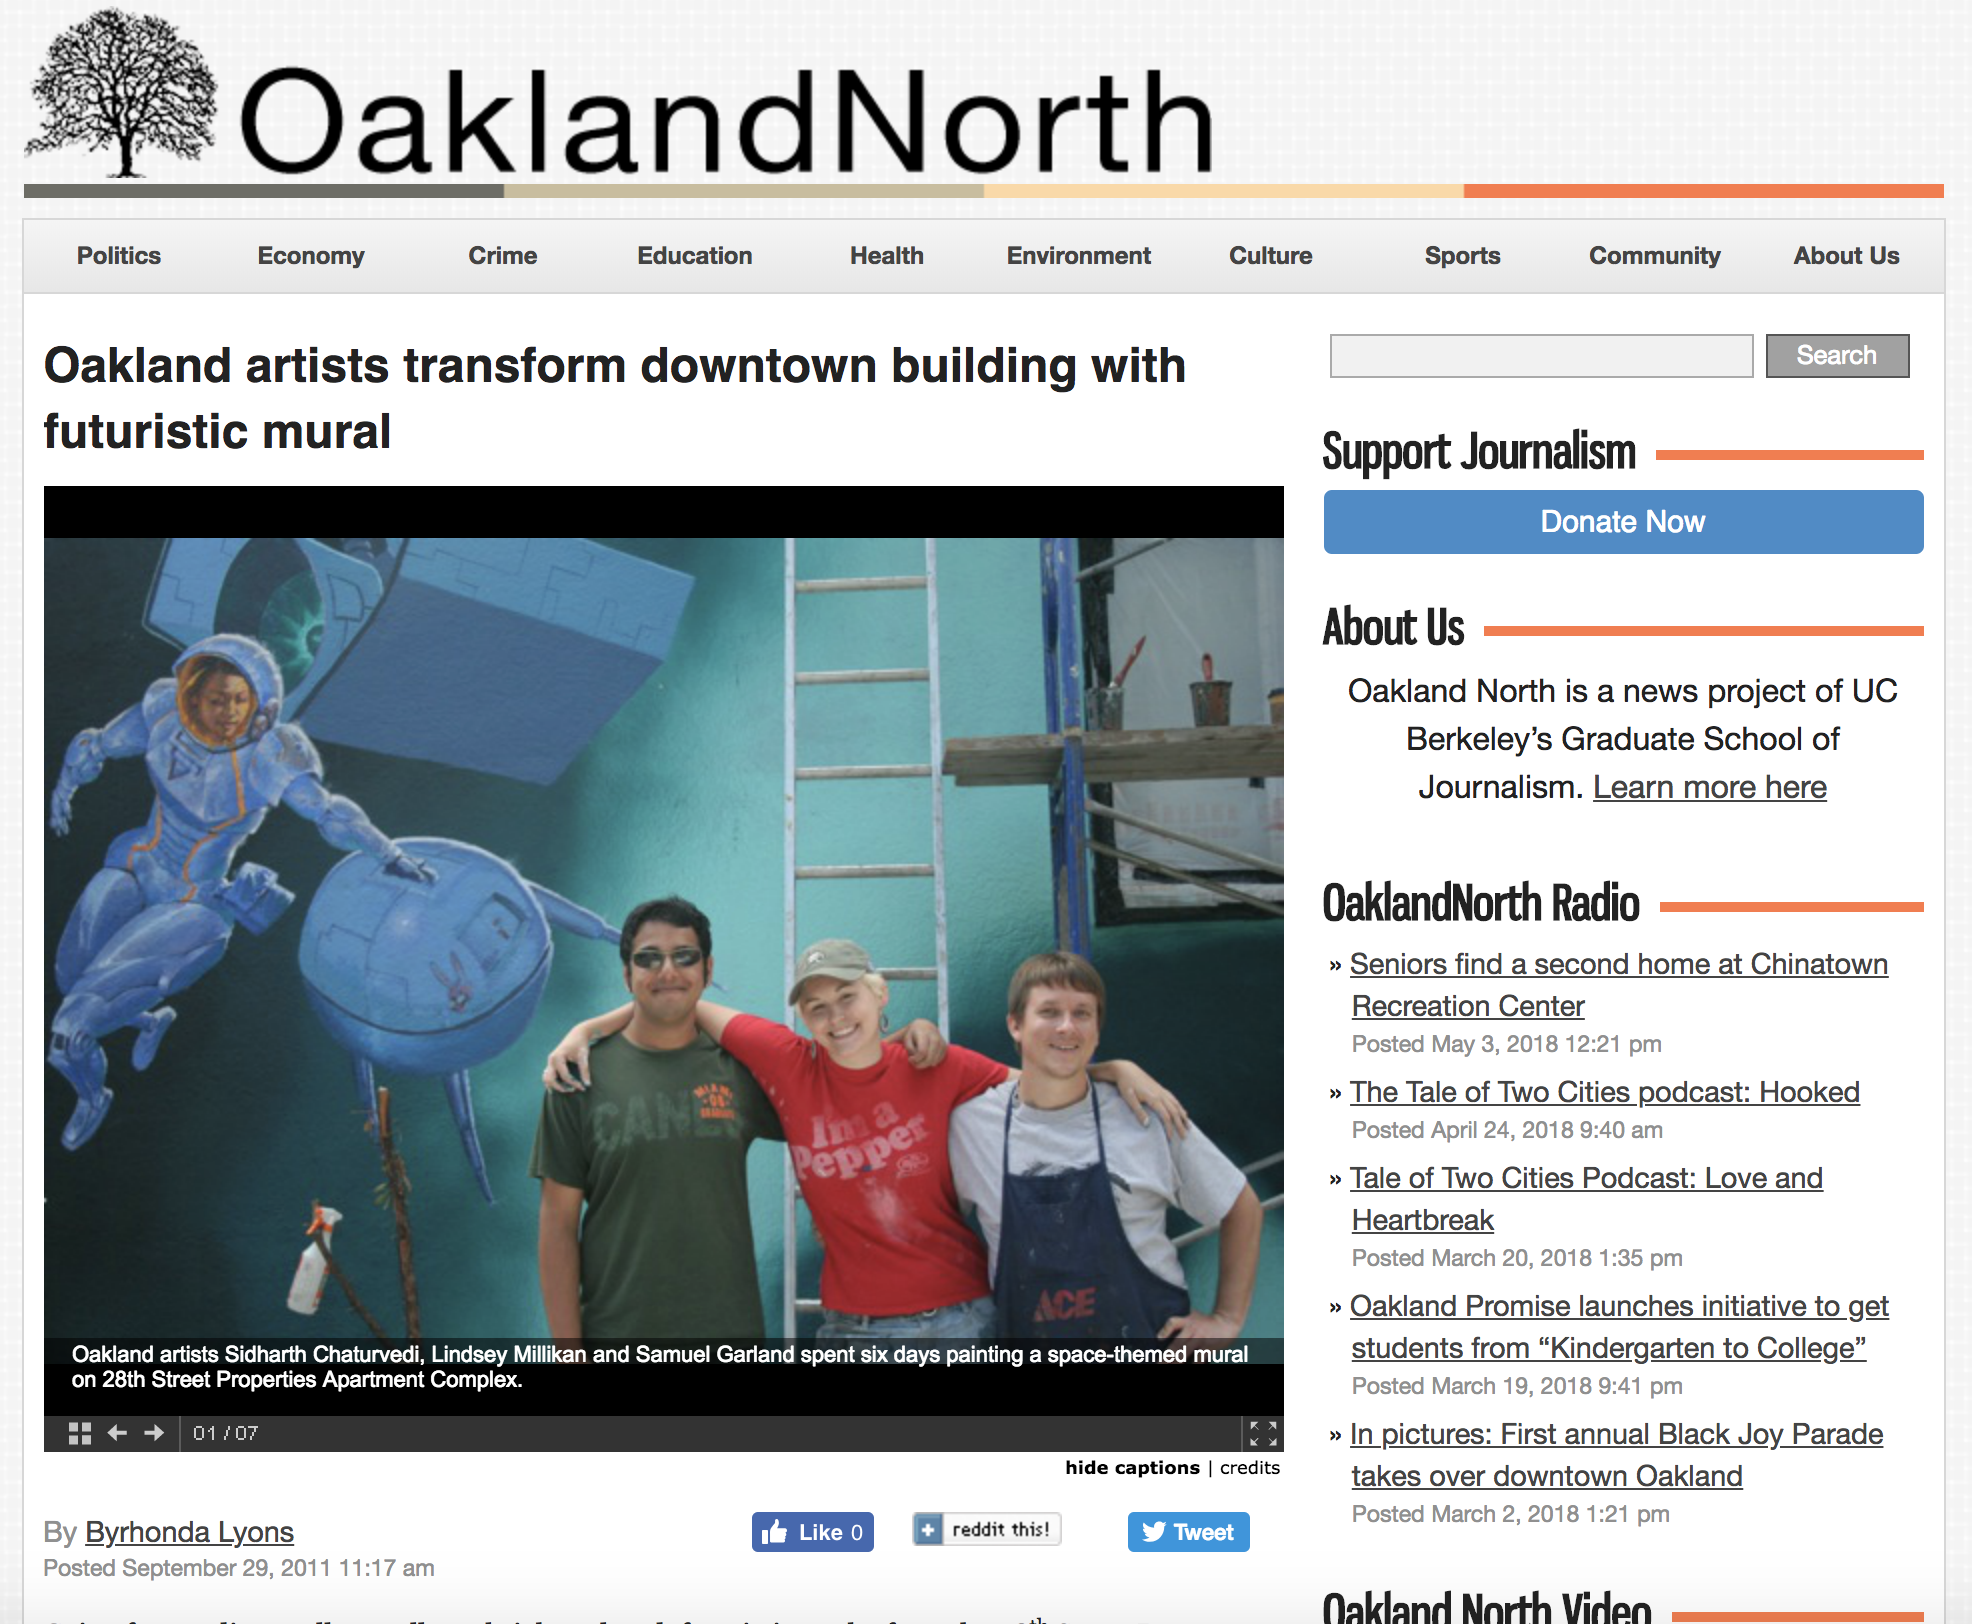 """An interview with OaklandNorth - """"Lindsey and her crew really worked hard and are passionate about what they do,"""" Toppano said. """"I think we're going to go ahead and do the rest of the building, and make it one big show piece."""""""